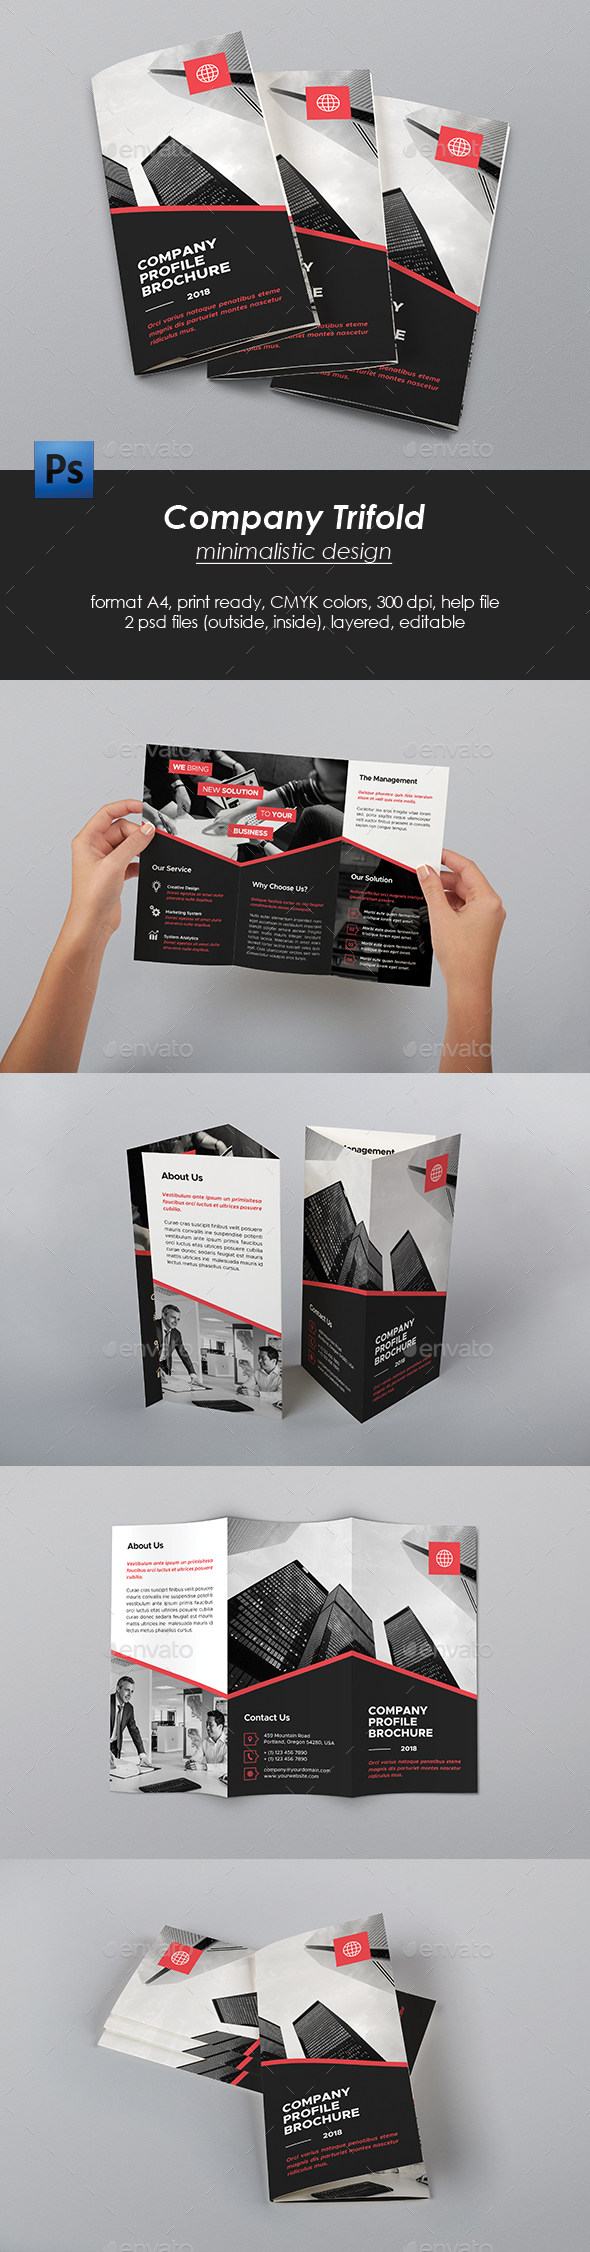 Trifold Company Brochure - Corporate Brochures